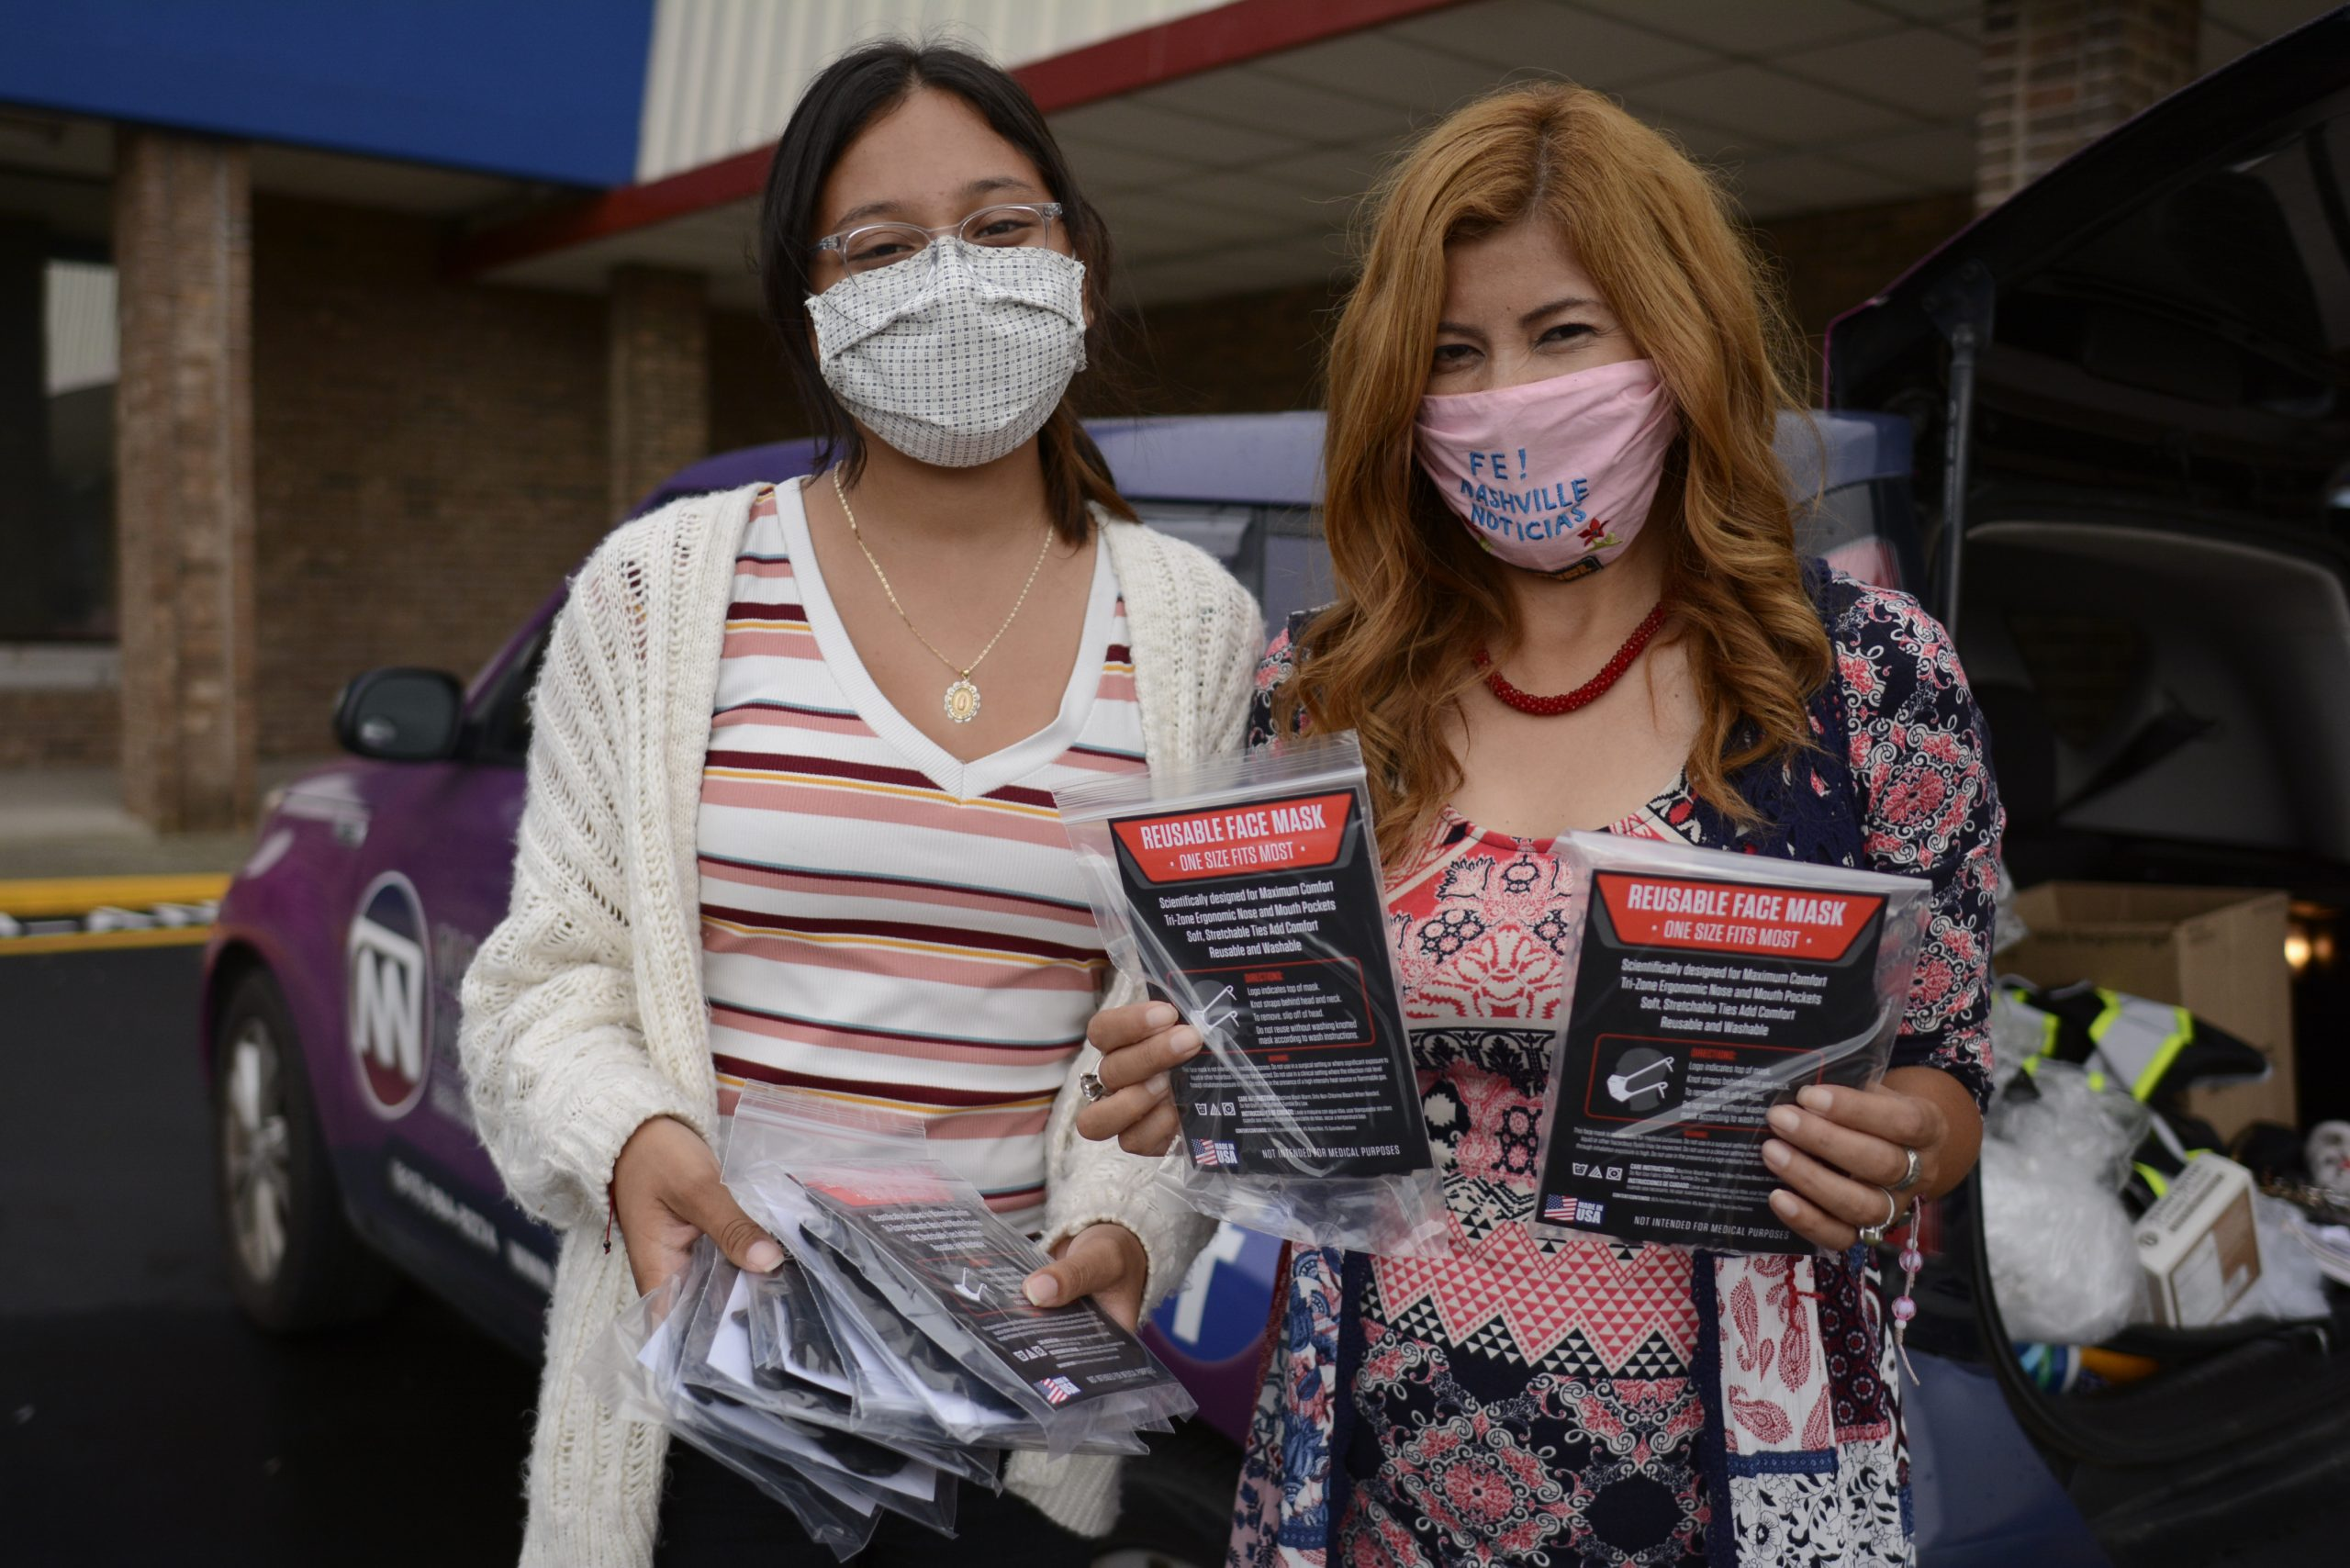 Veronica Salcedo, a journalist with Nashville Noticias, and a volunteer distribute personal protective gear at a drive through community event. (Photo: Dulce Torres Guzman/Tennessee Lookout)